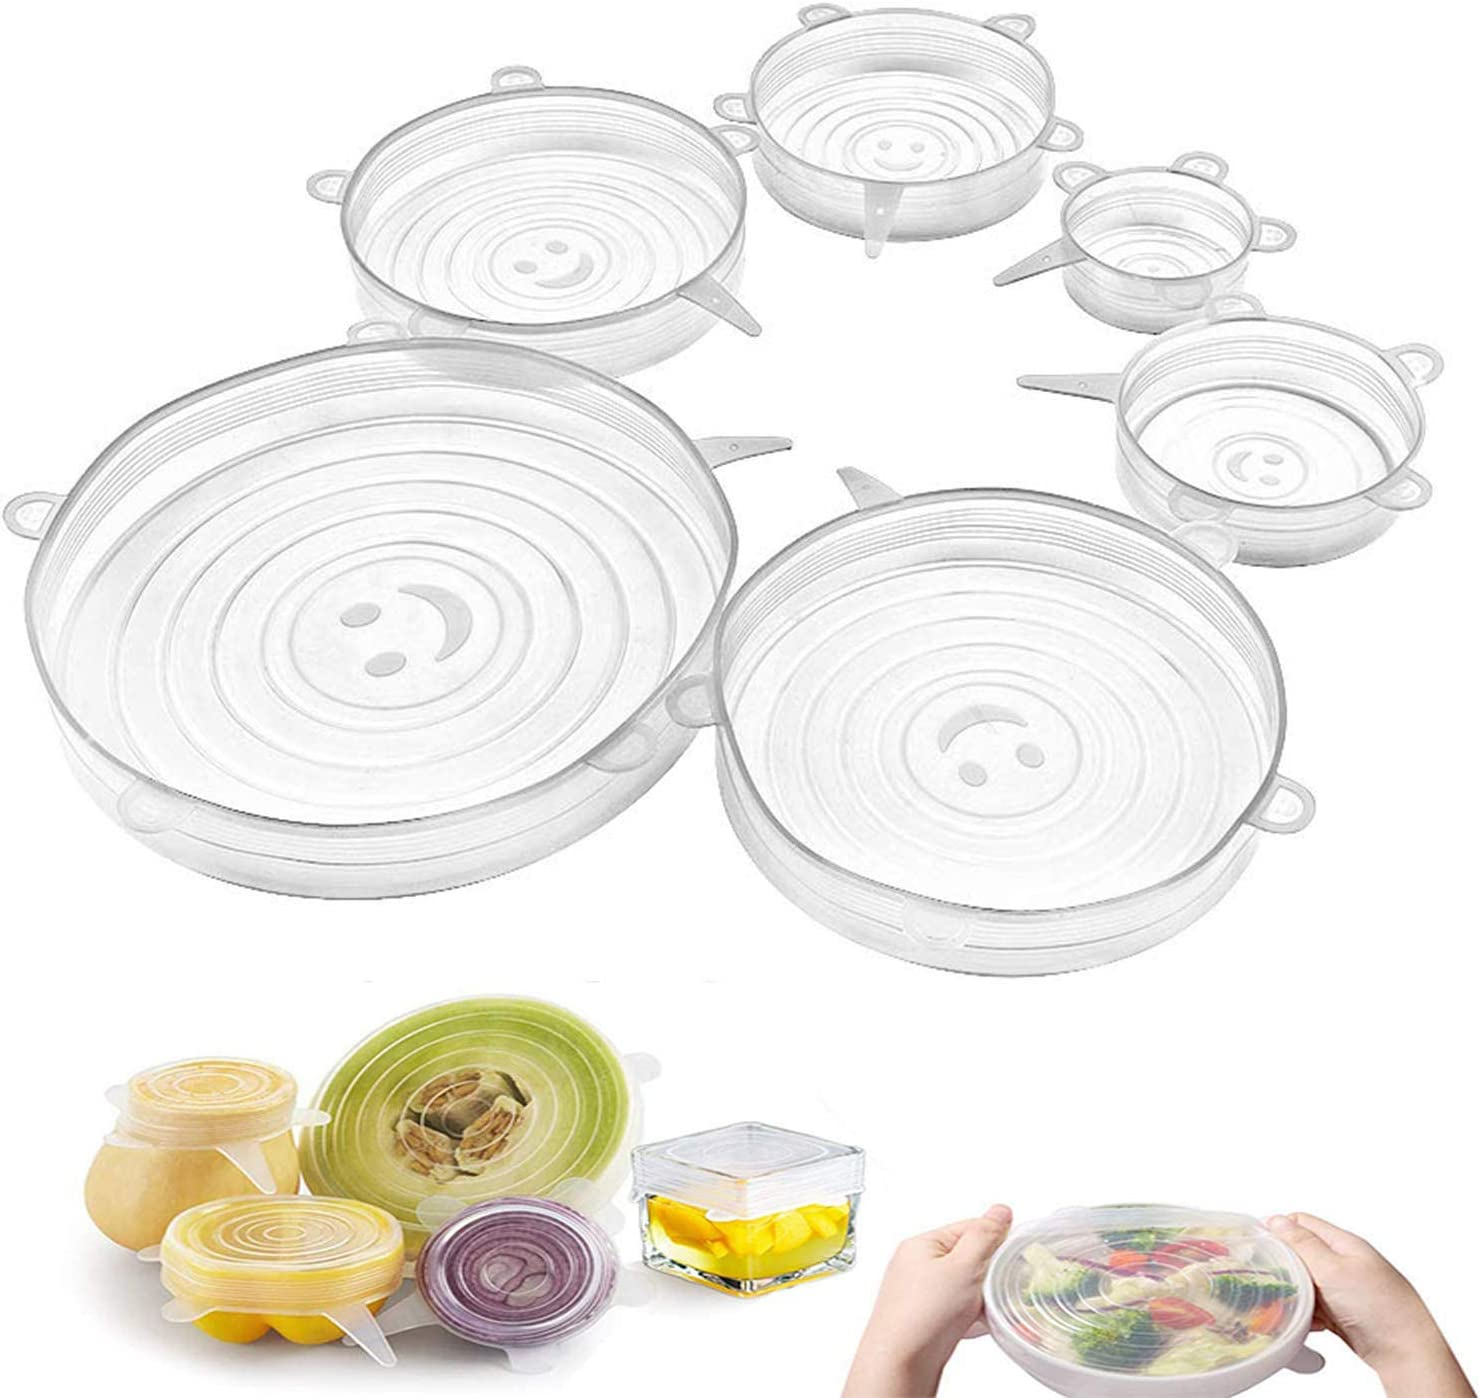 Getfitsoo Silicone Stretch Lids 6 Pack,Reusable Silicone Covers for Various Sizes Bowls, Eco-Friendly Bowl Lids for Sealing Food to Replace Plastic Wrap